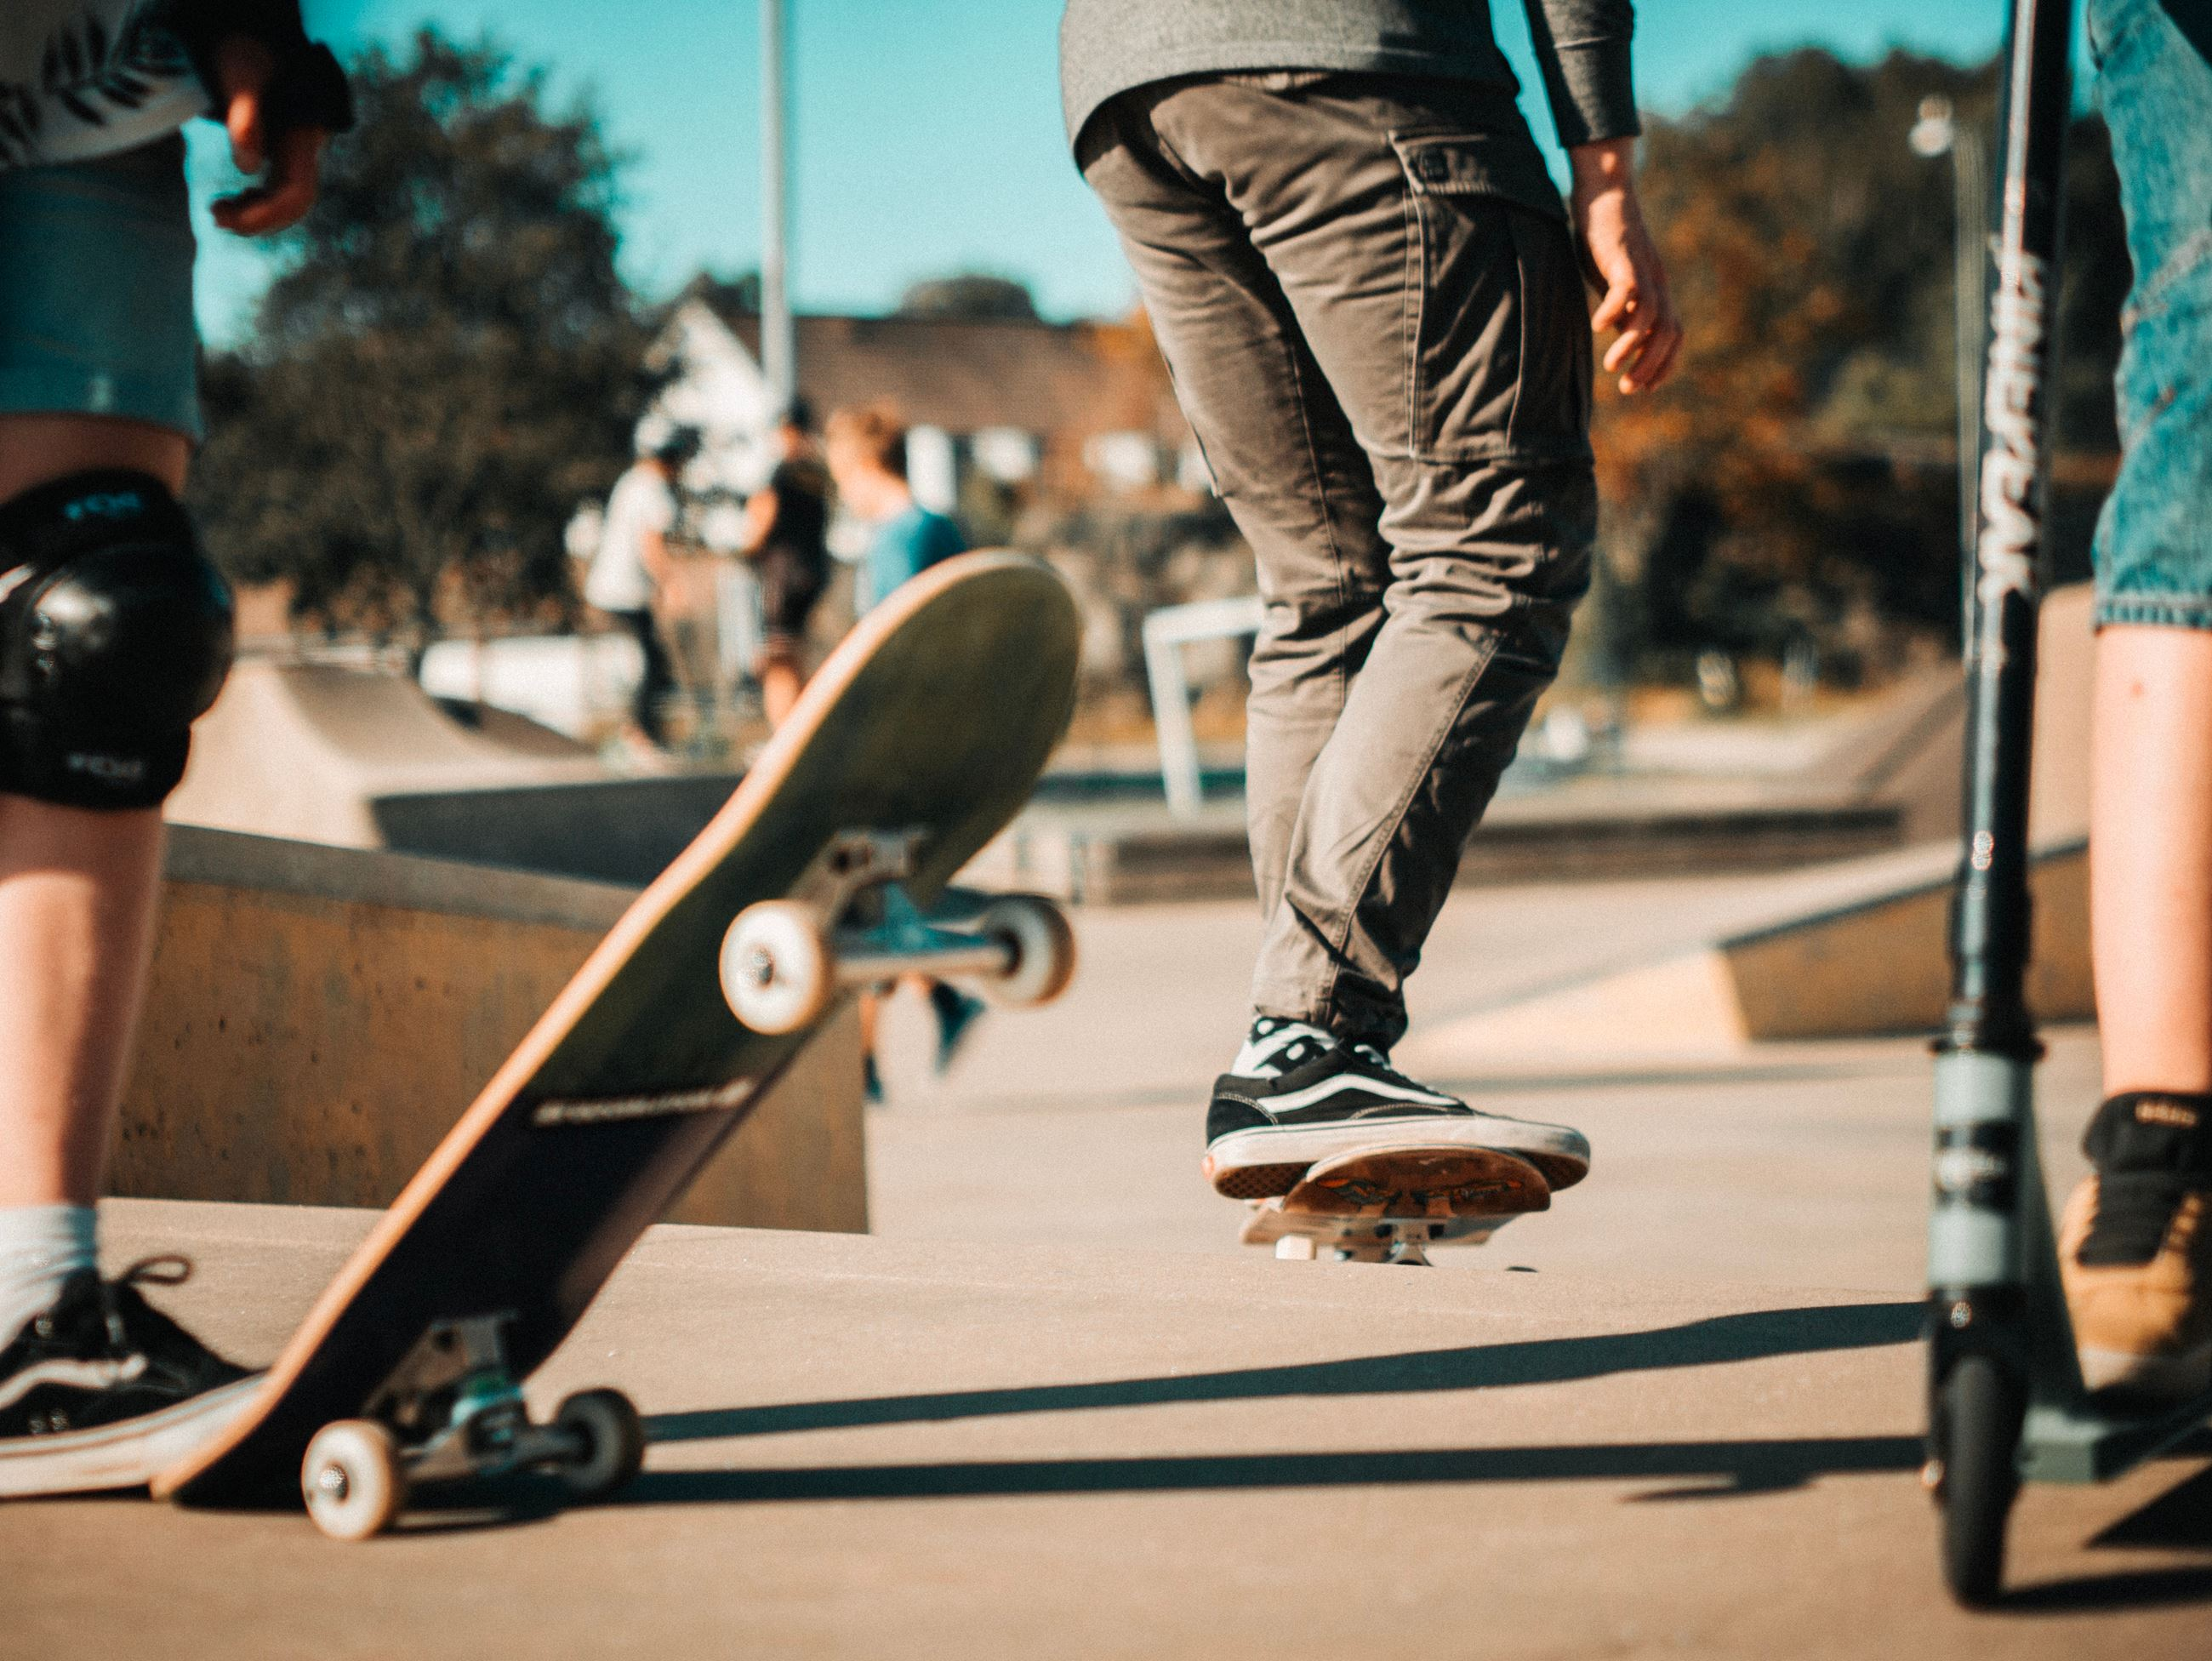 Canva - Selective Focus Photography of Person Doing Skateboard Stunts